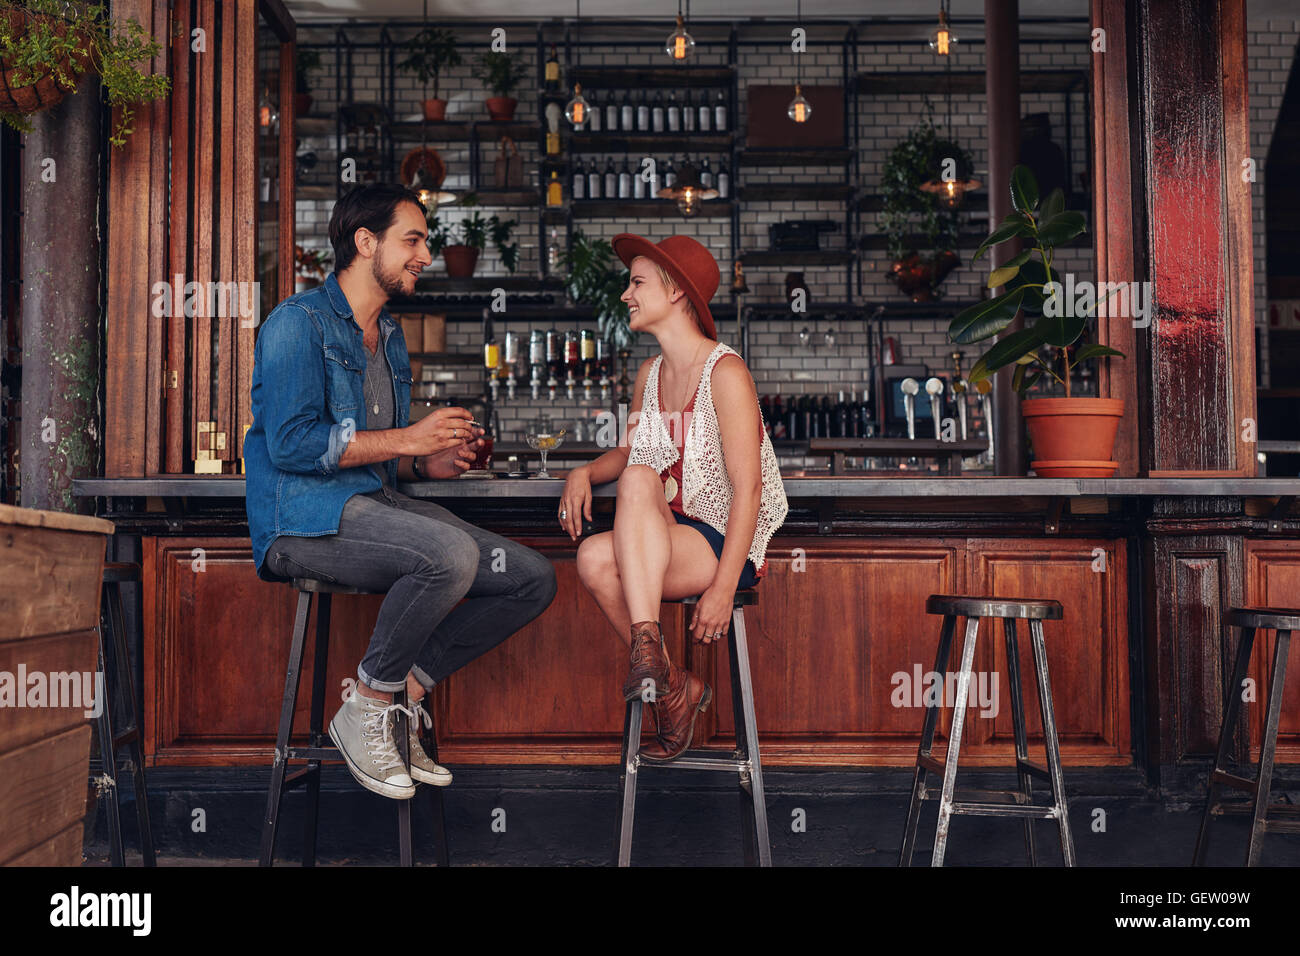 Shot of young couple sitting at cafe counter. Young man and woman at coffee shop. - Stock Image